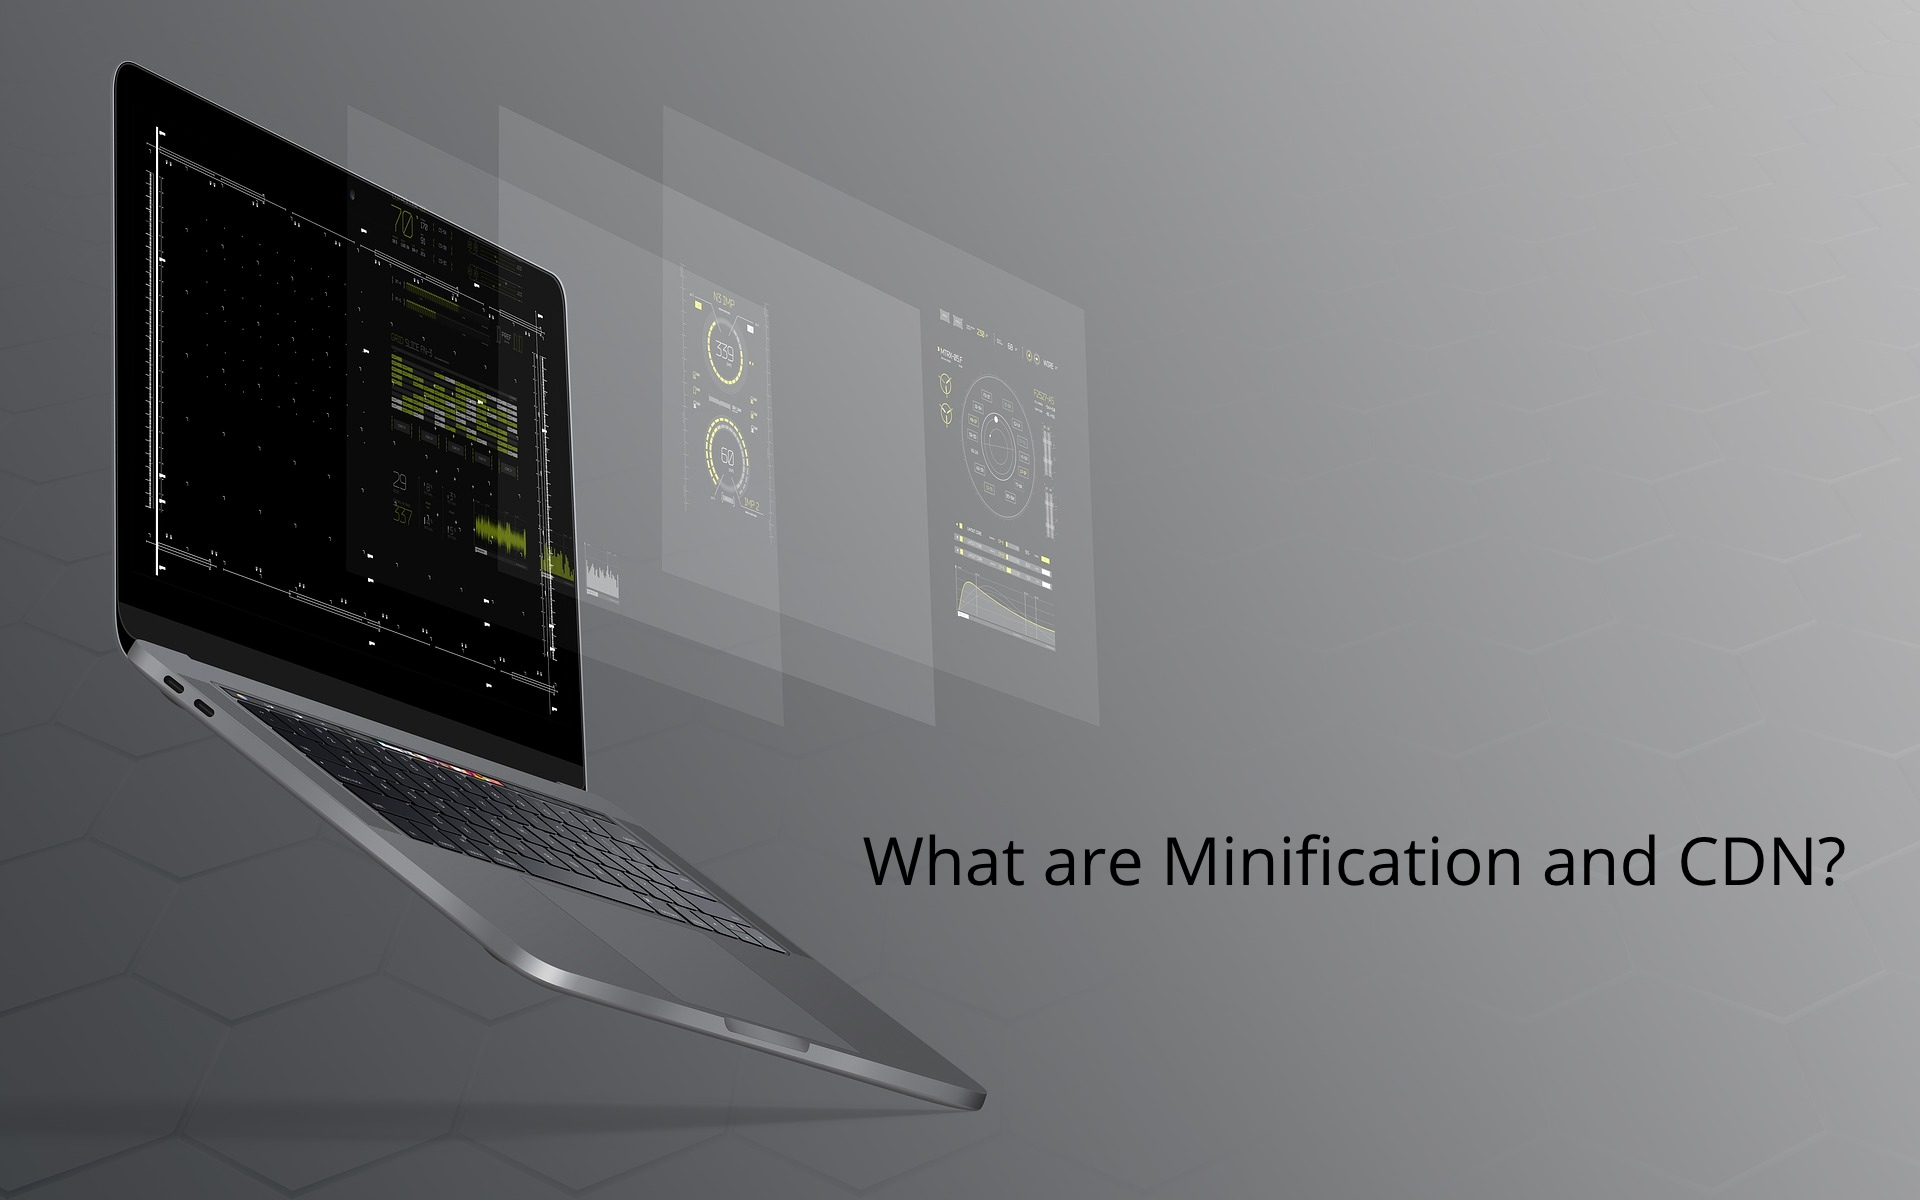 What are Minification and CDN?